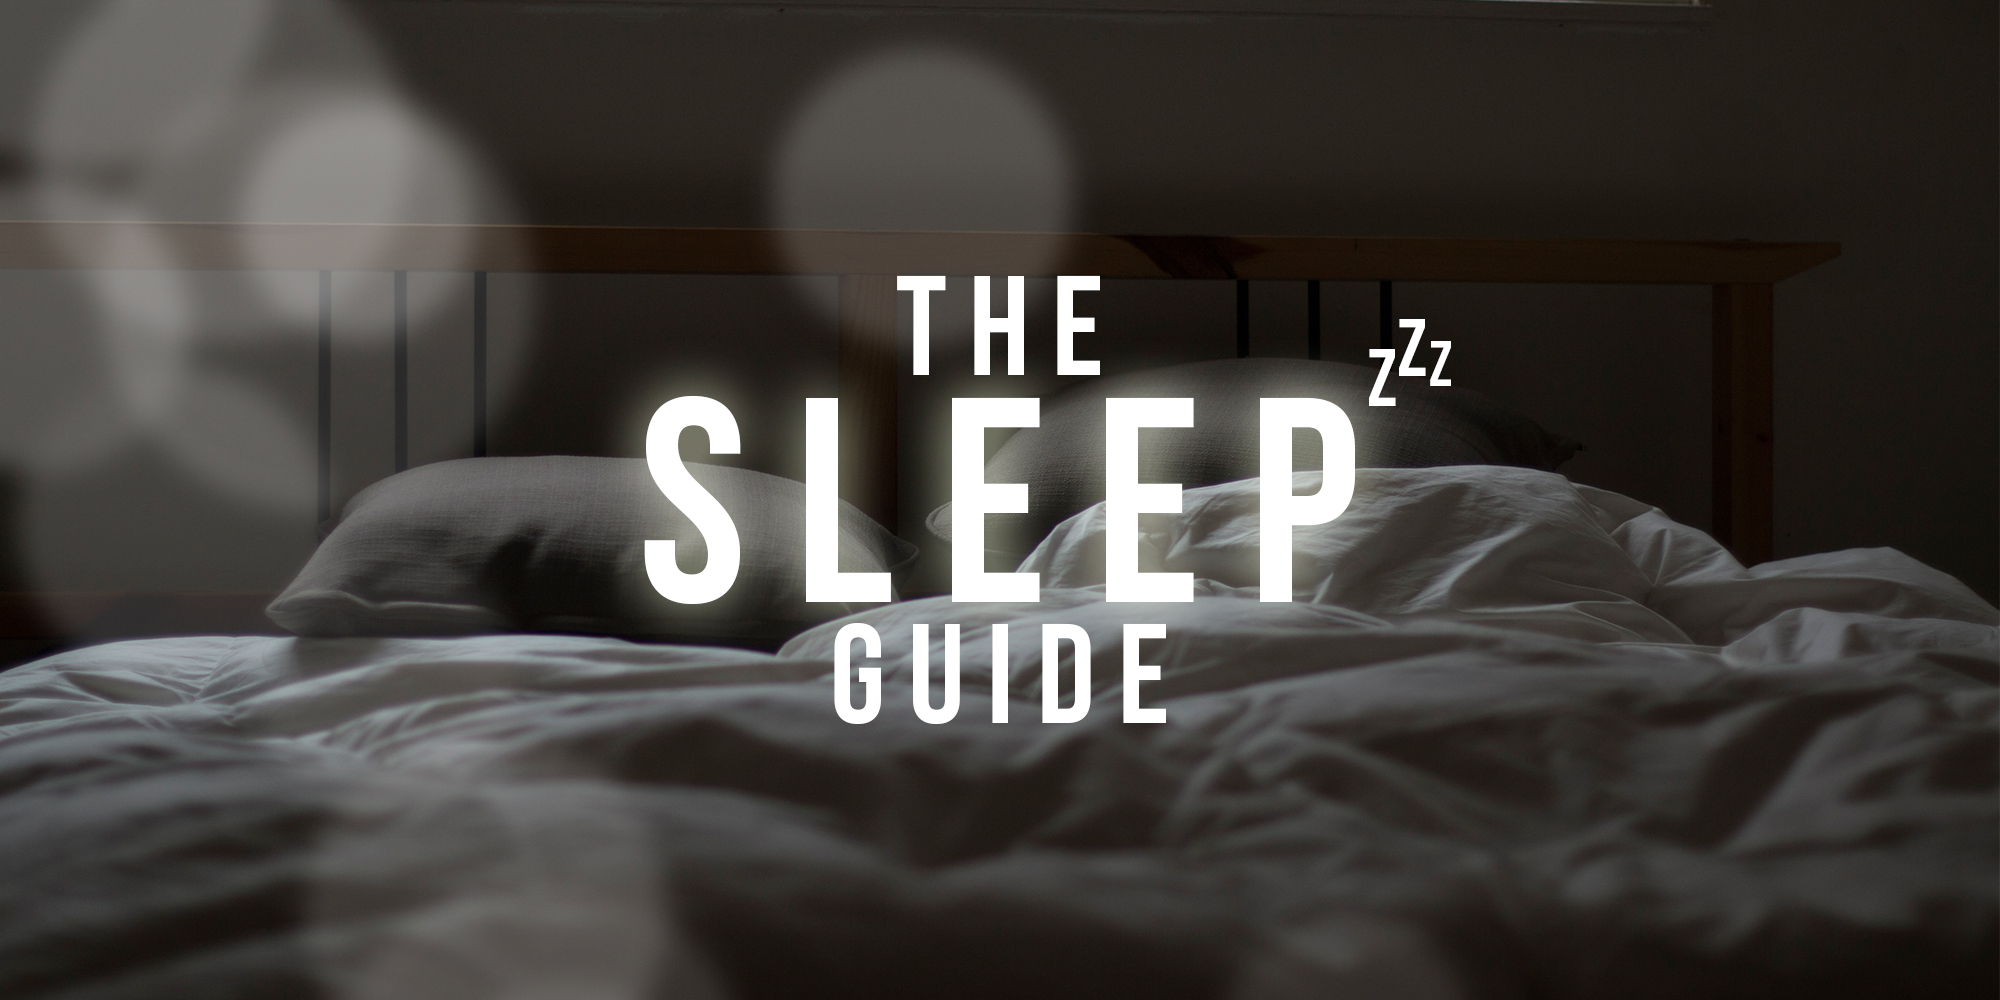 THE SLEEP GUIDE